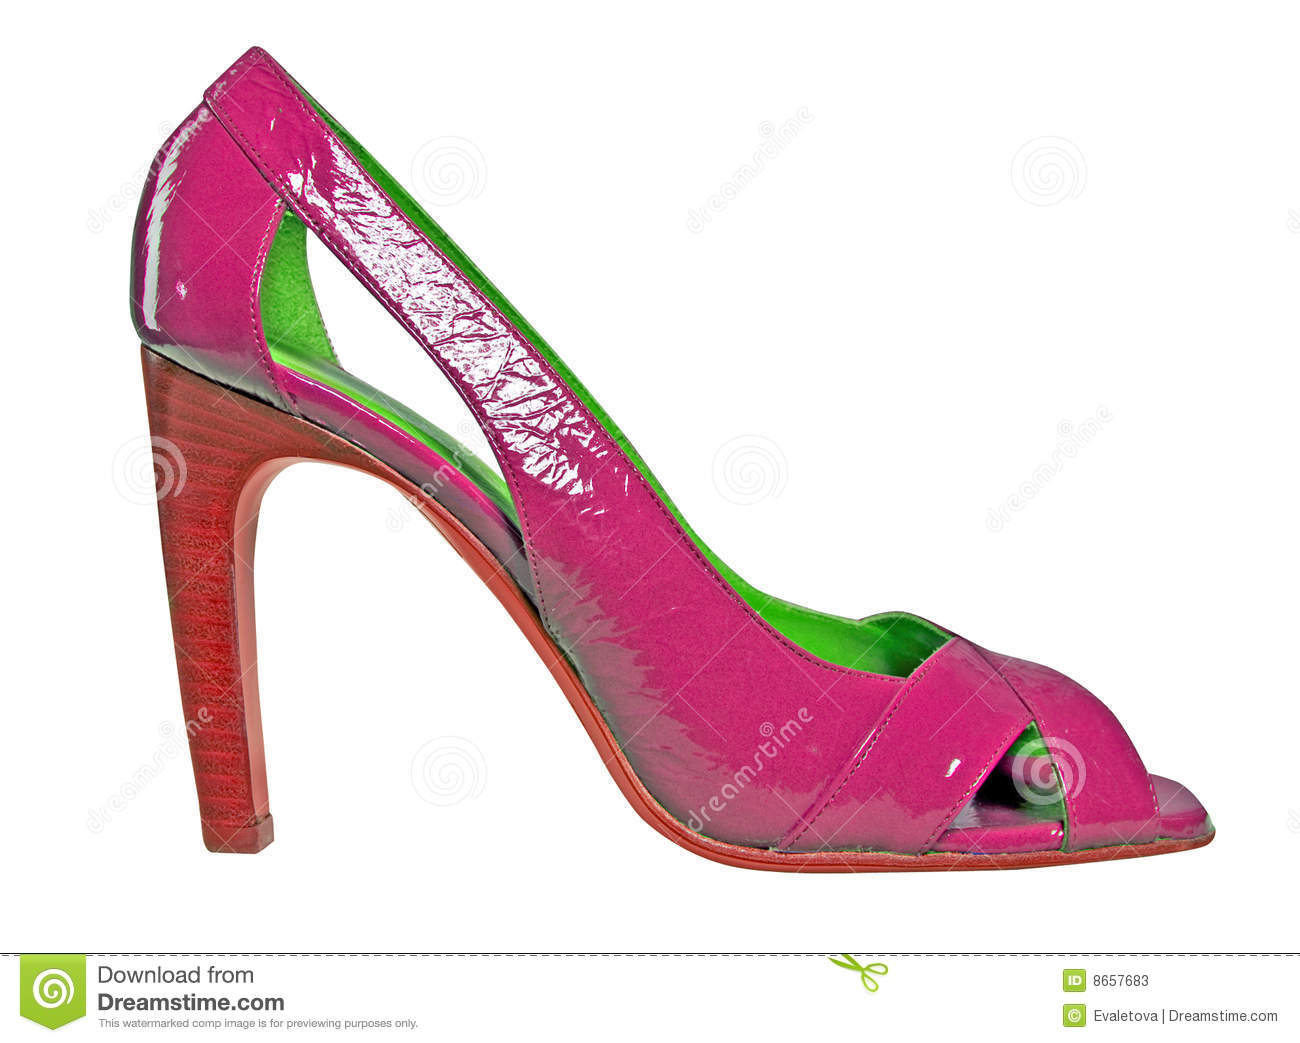 Chaussure rouge